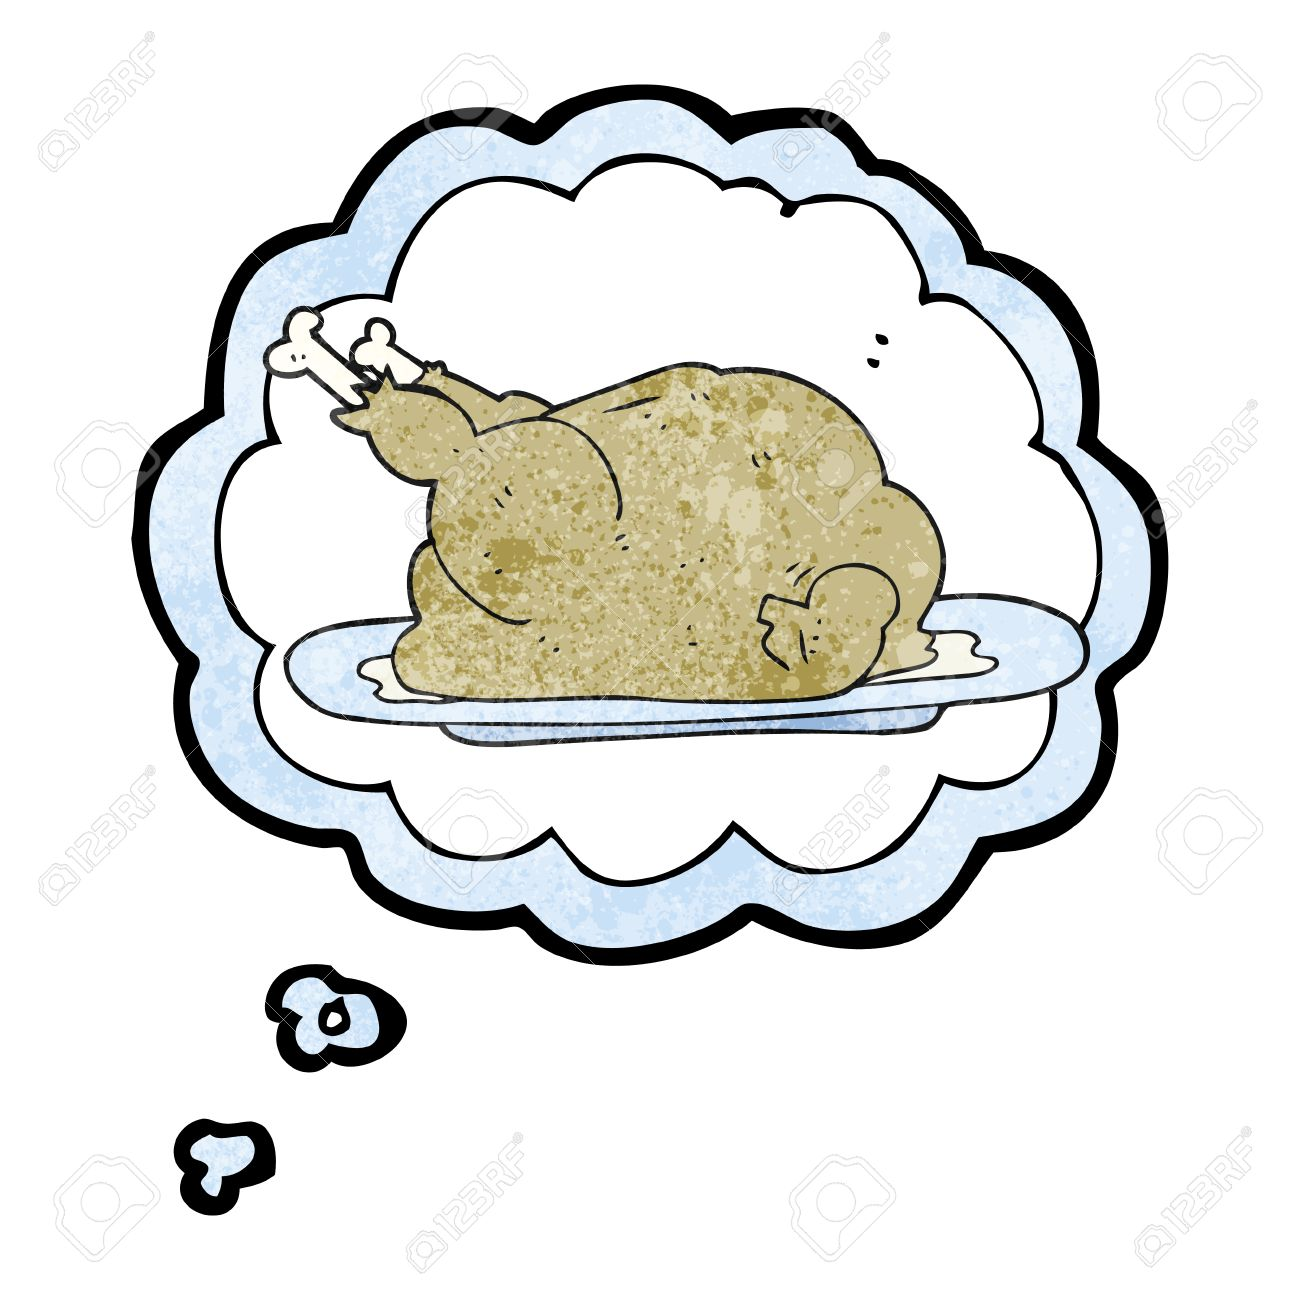 Freehand Drawn Thought Bubble Textured Cartoon Cooked Chicken Stock Vector